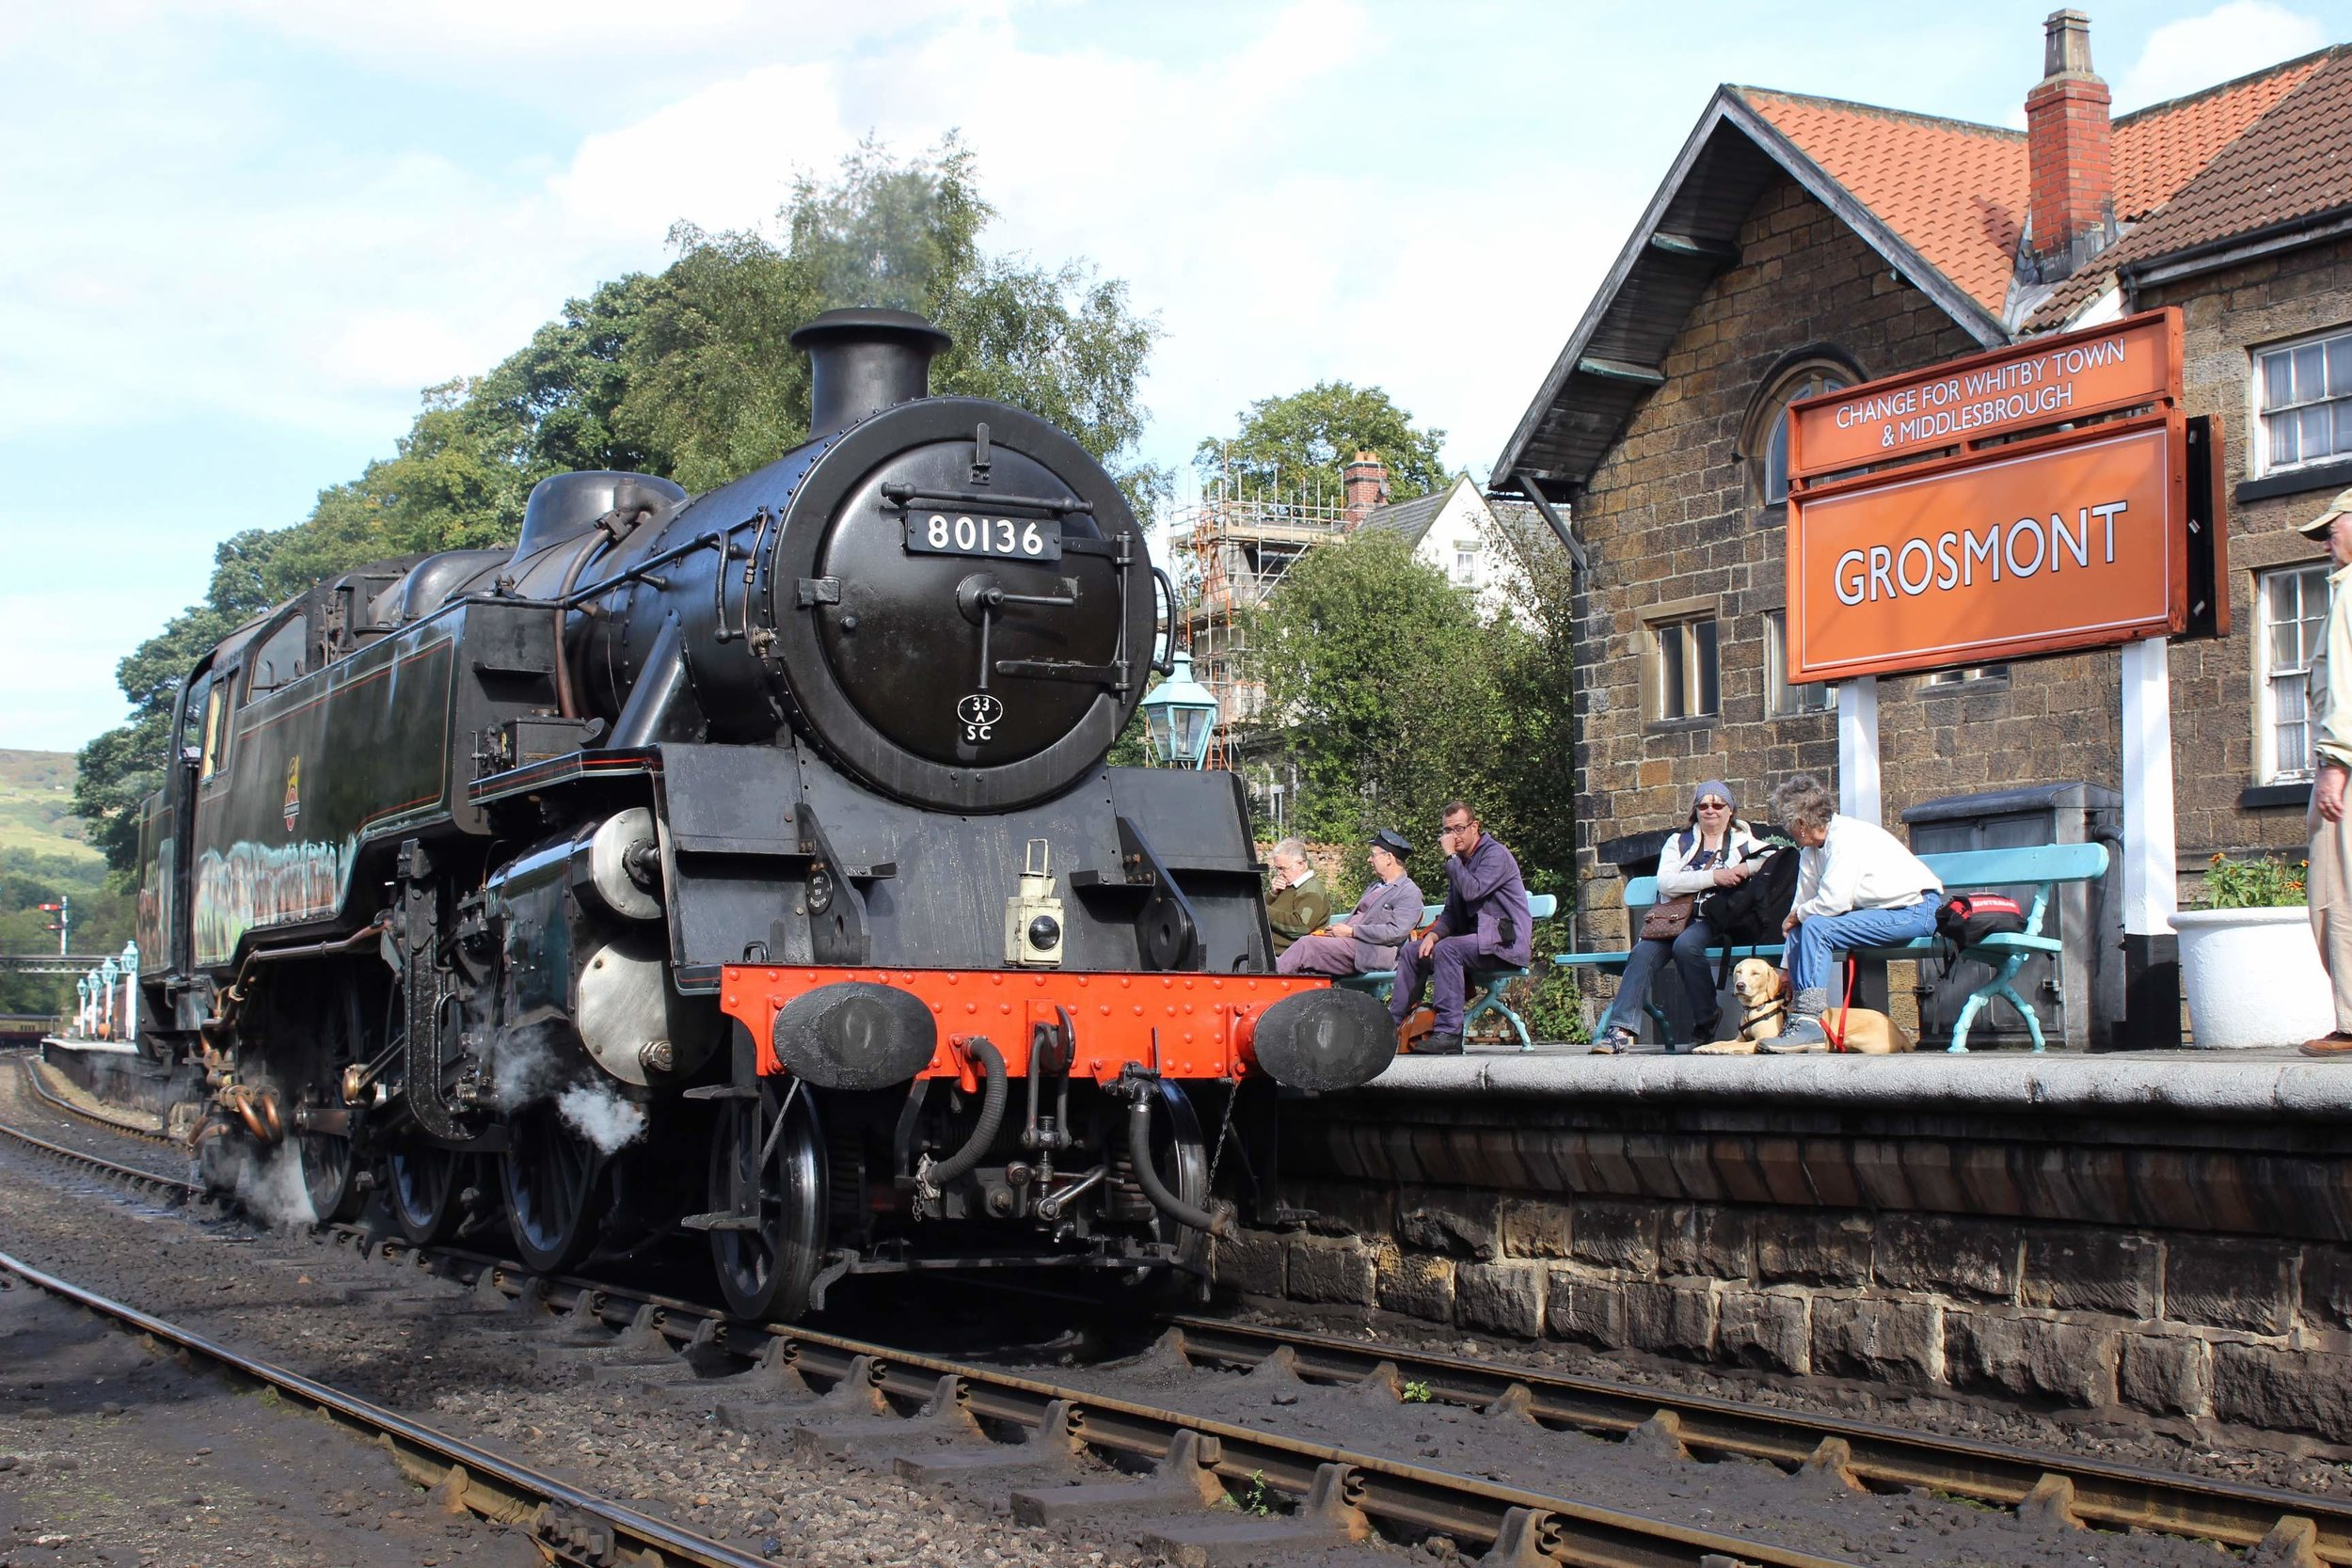 BR Standard '4MT' 2-6-4T No. 80136 rests in the platform at Grosmont, where a new volunteer hostel will be built as part of the NYMR's £9.2million 'Yorkshire's Magnificent Journey' campaign. THOMAS BRIGHT/SR